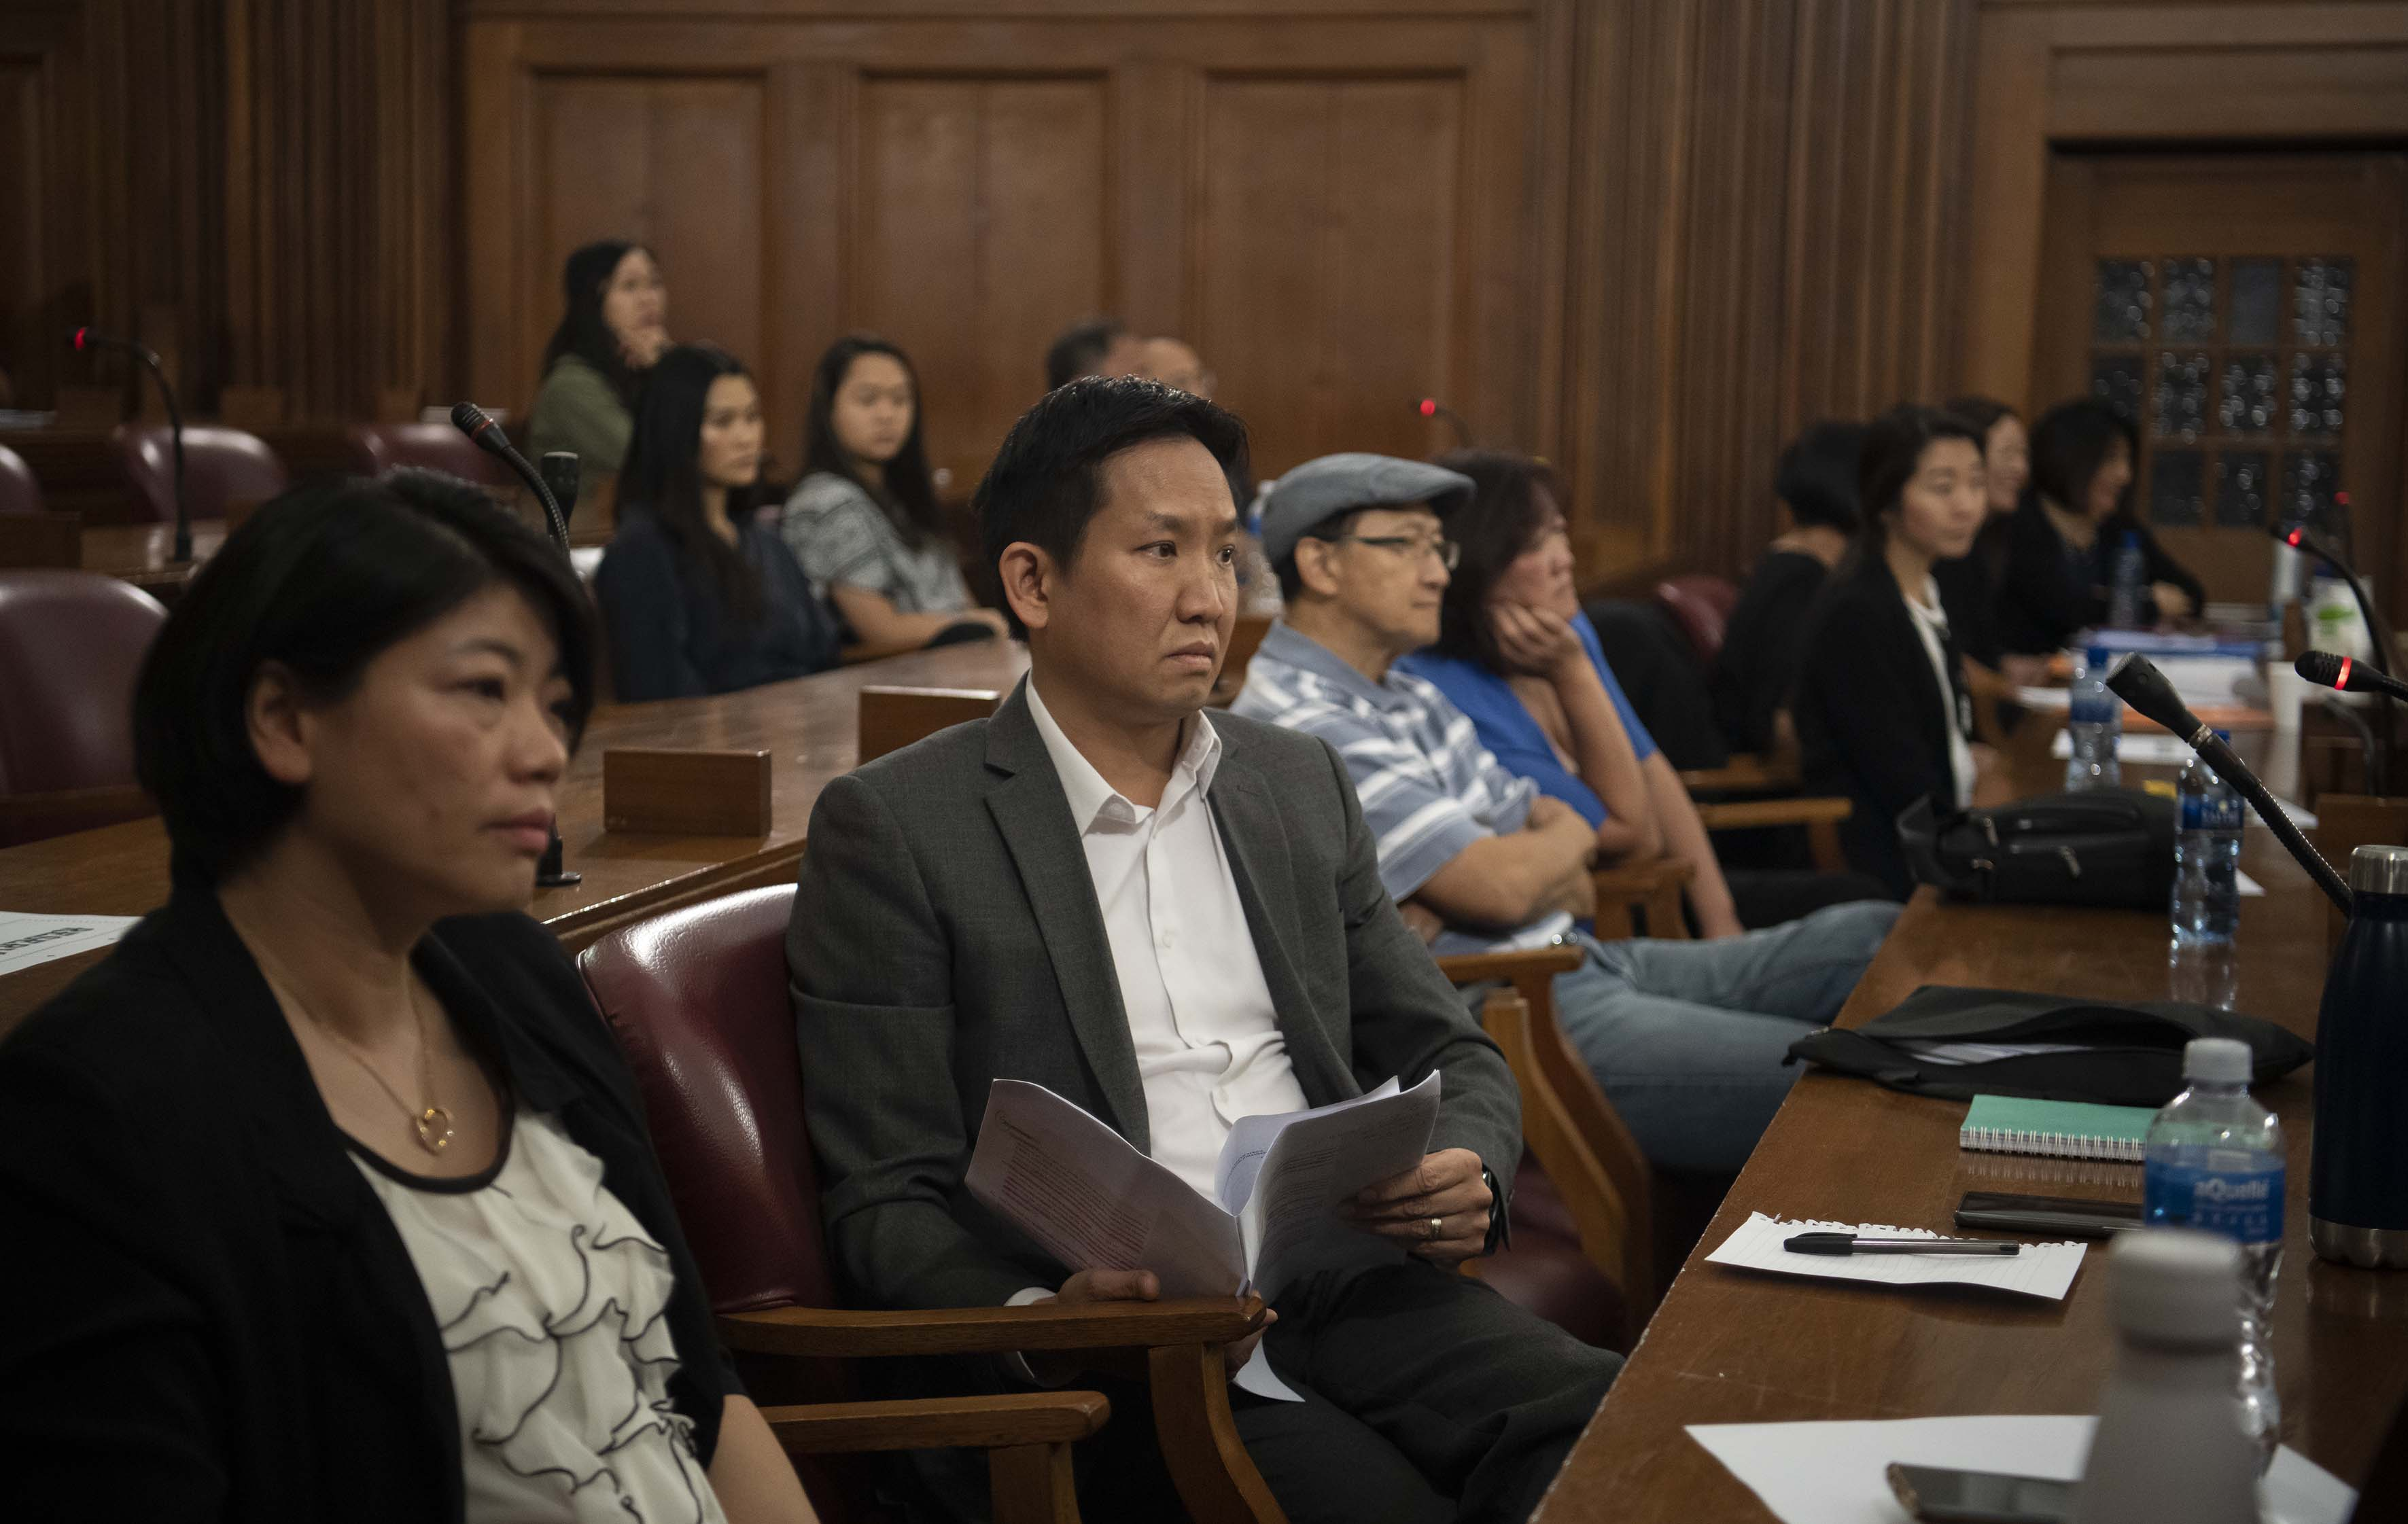 25 November 2019: Centre, The Chinese Association chairperson Erwin Pon in the Johannesburg High Court after the anti-Chinese hate speech case resumed.